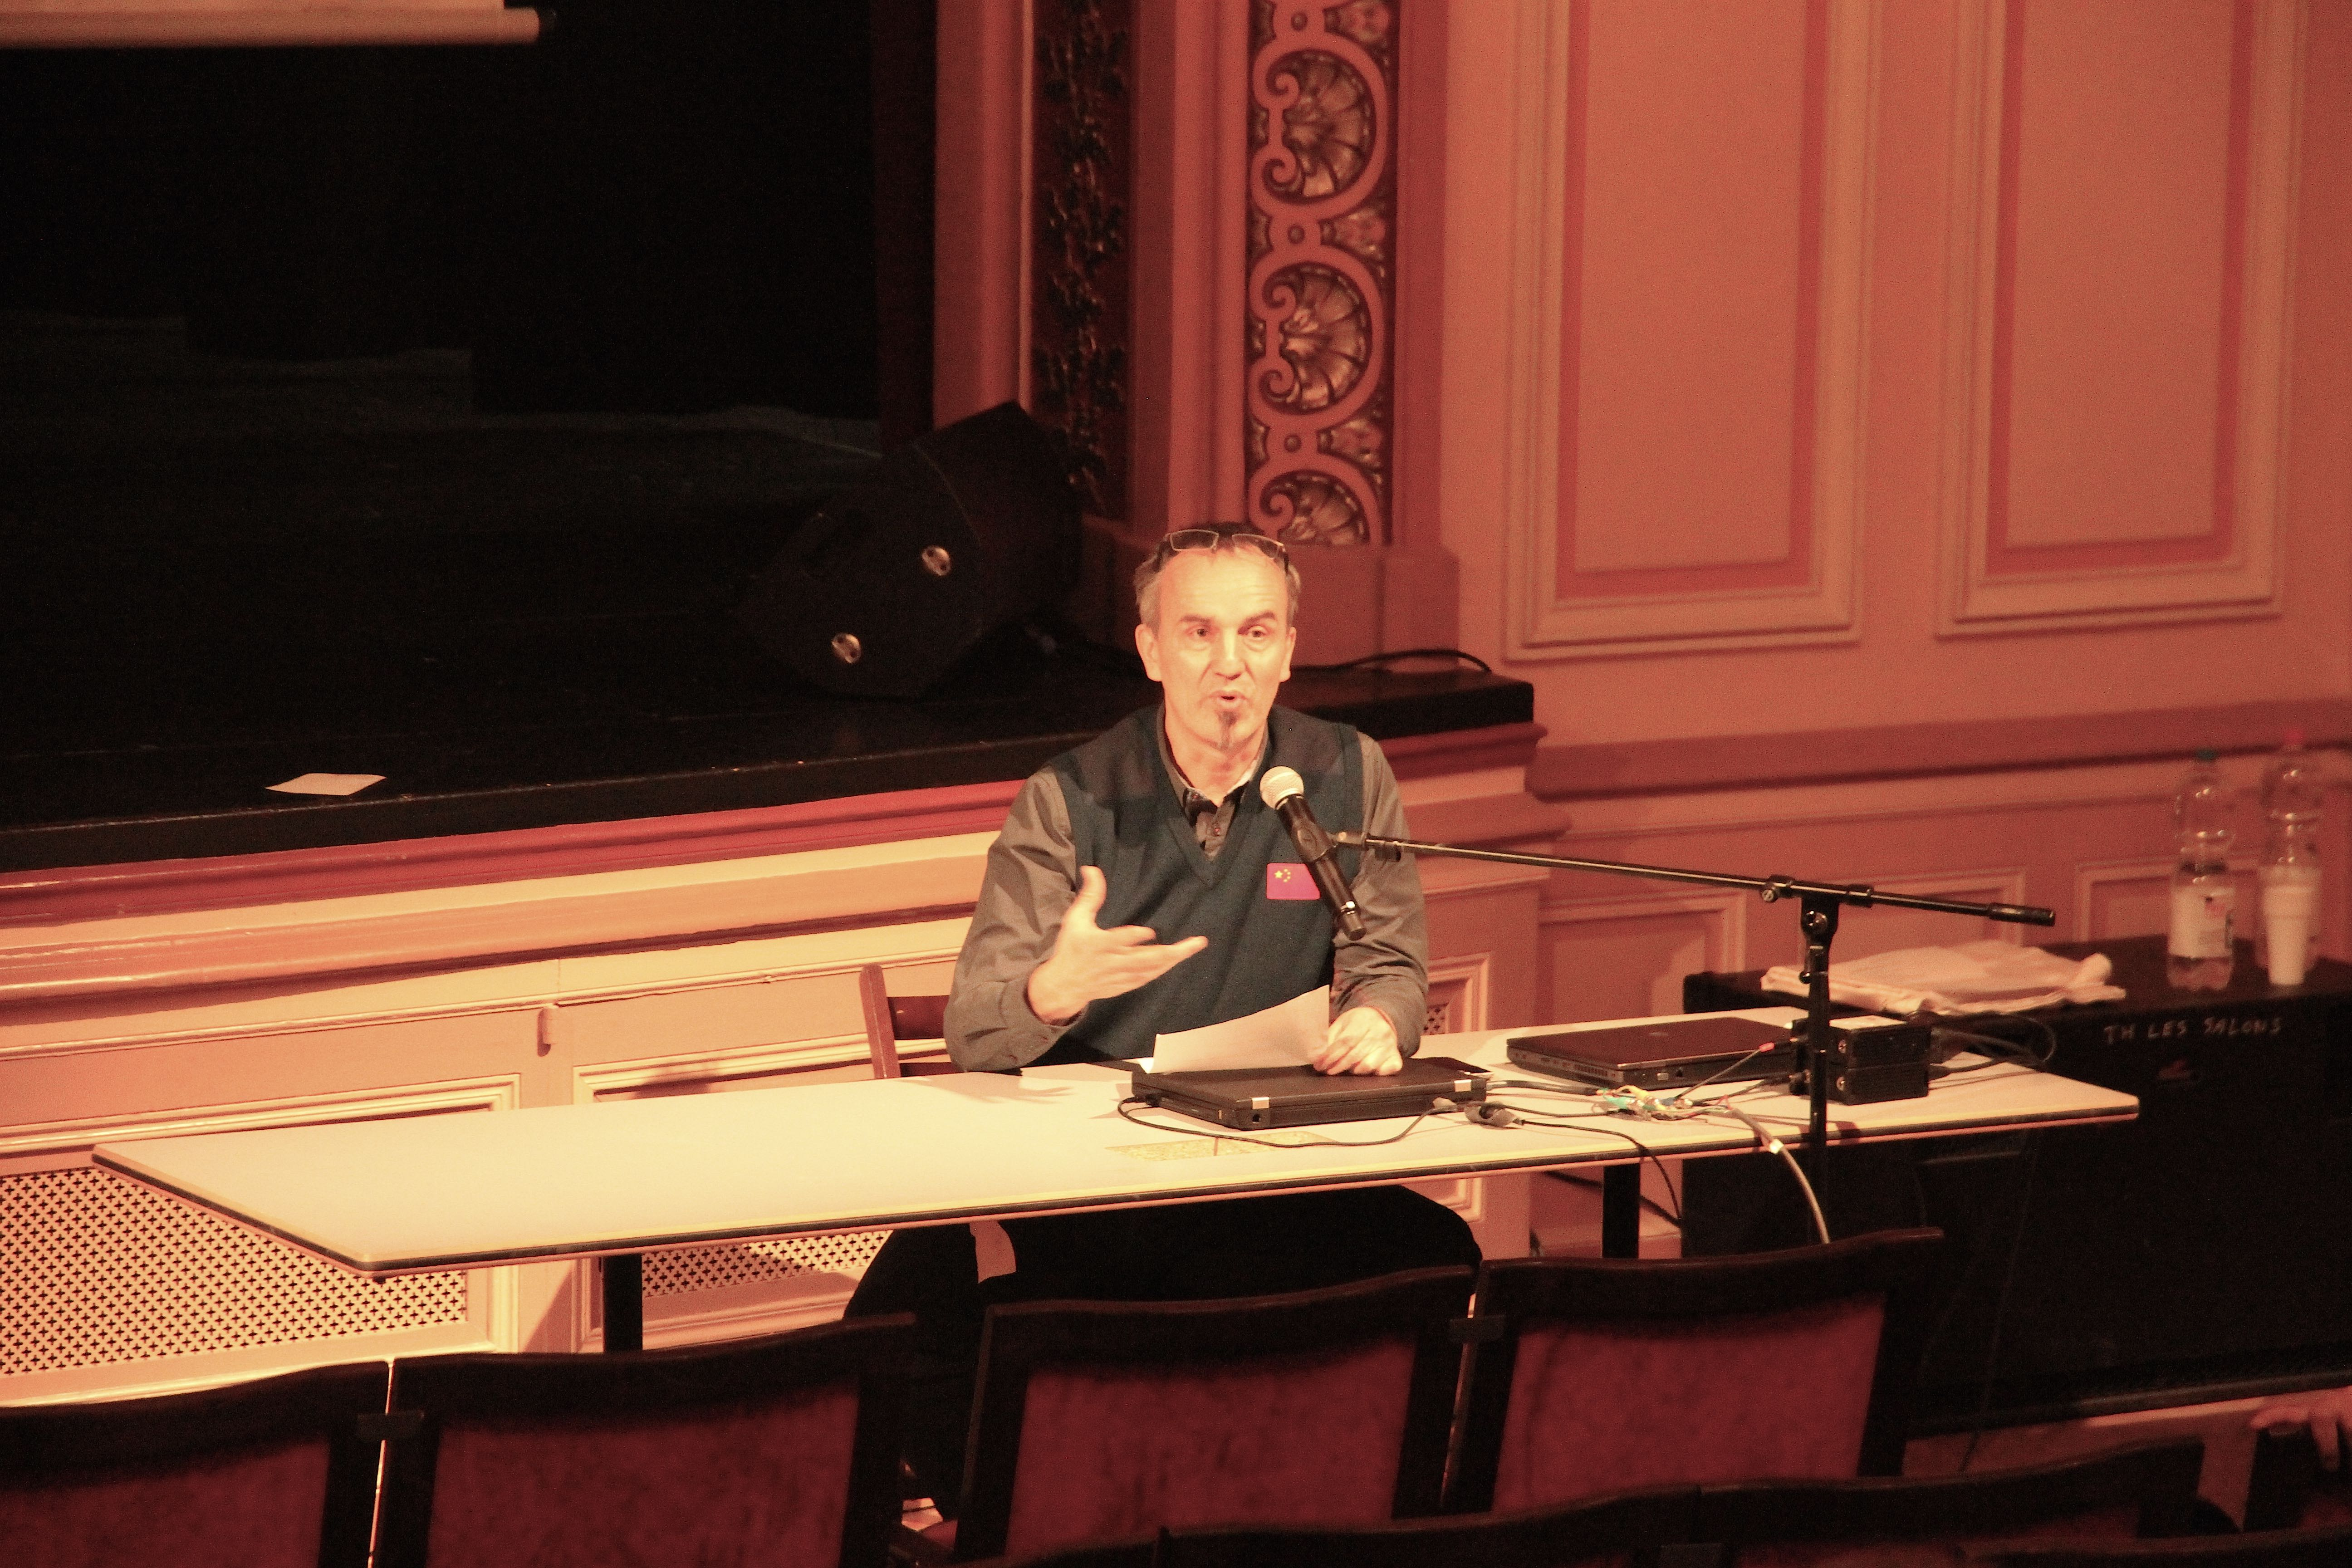 061.IMG_3232.lecture.R.Zollitsch.jpg